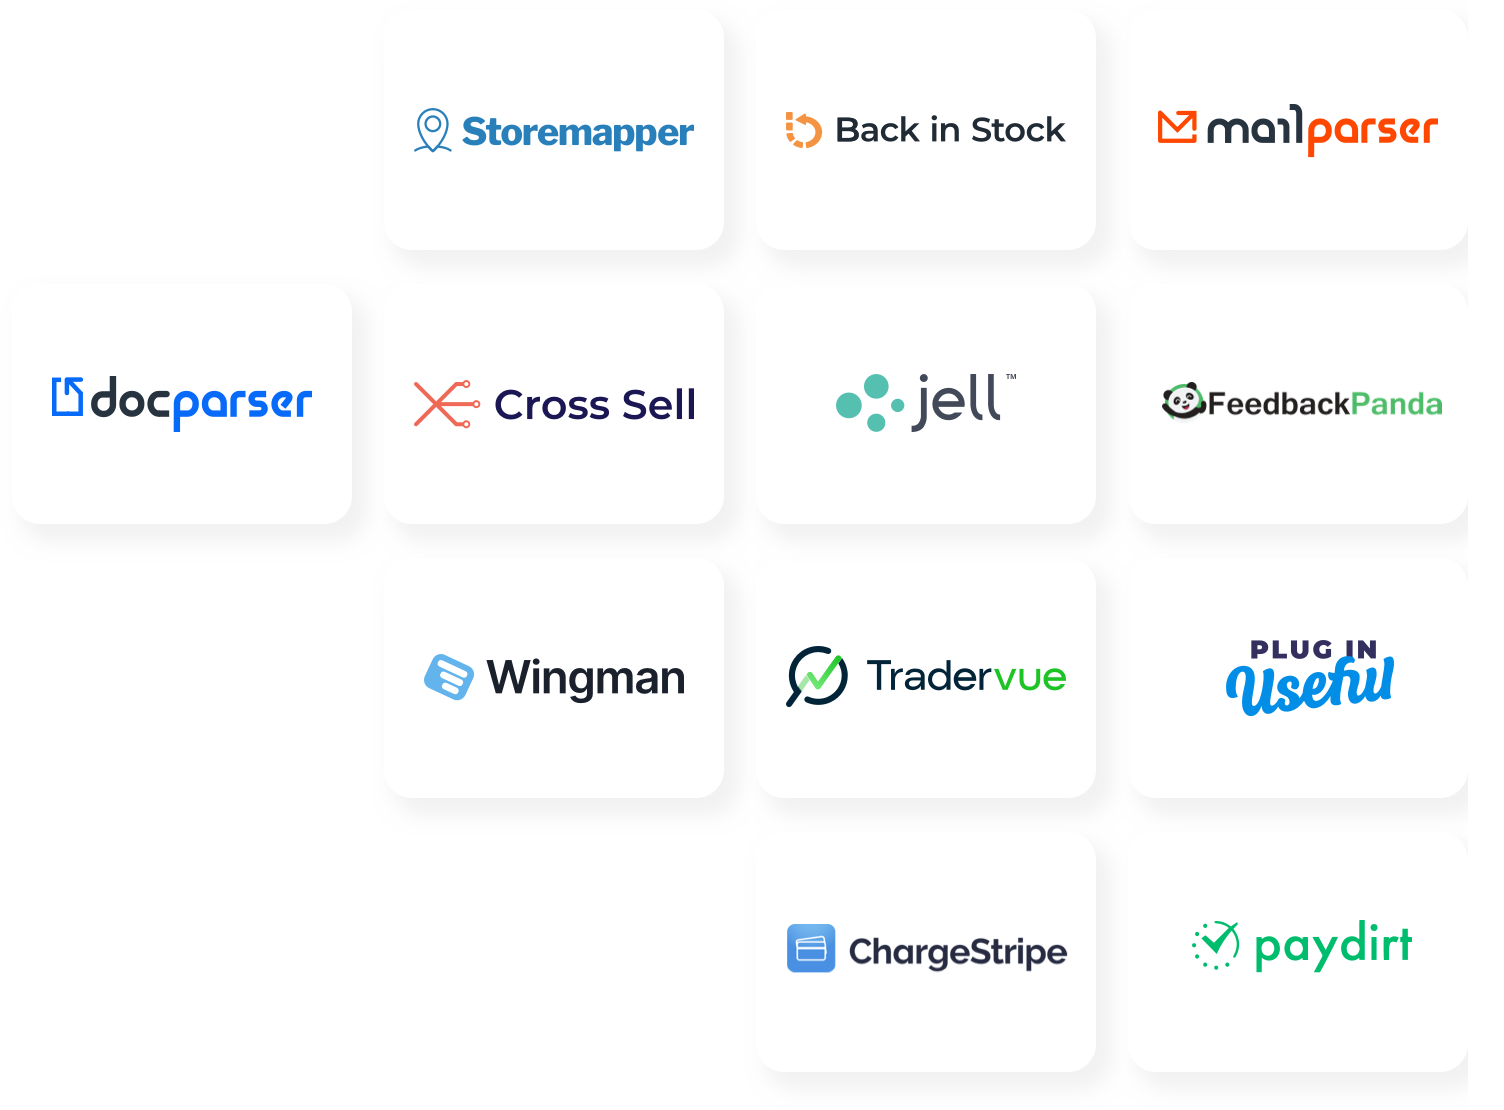 SureSwift Capital runs a growing portfolio of SaaS products